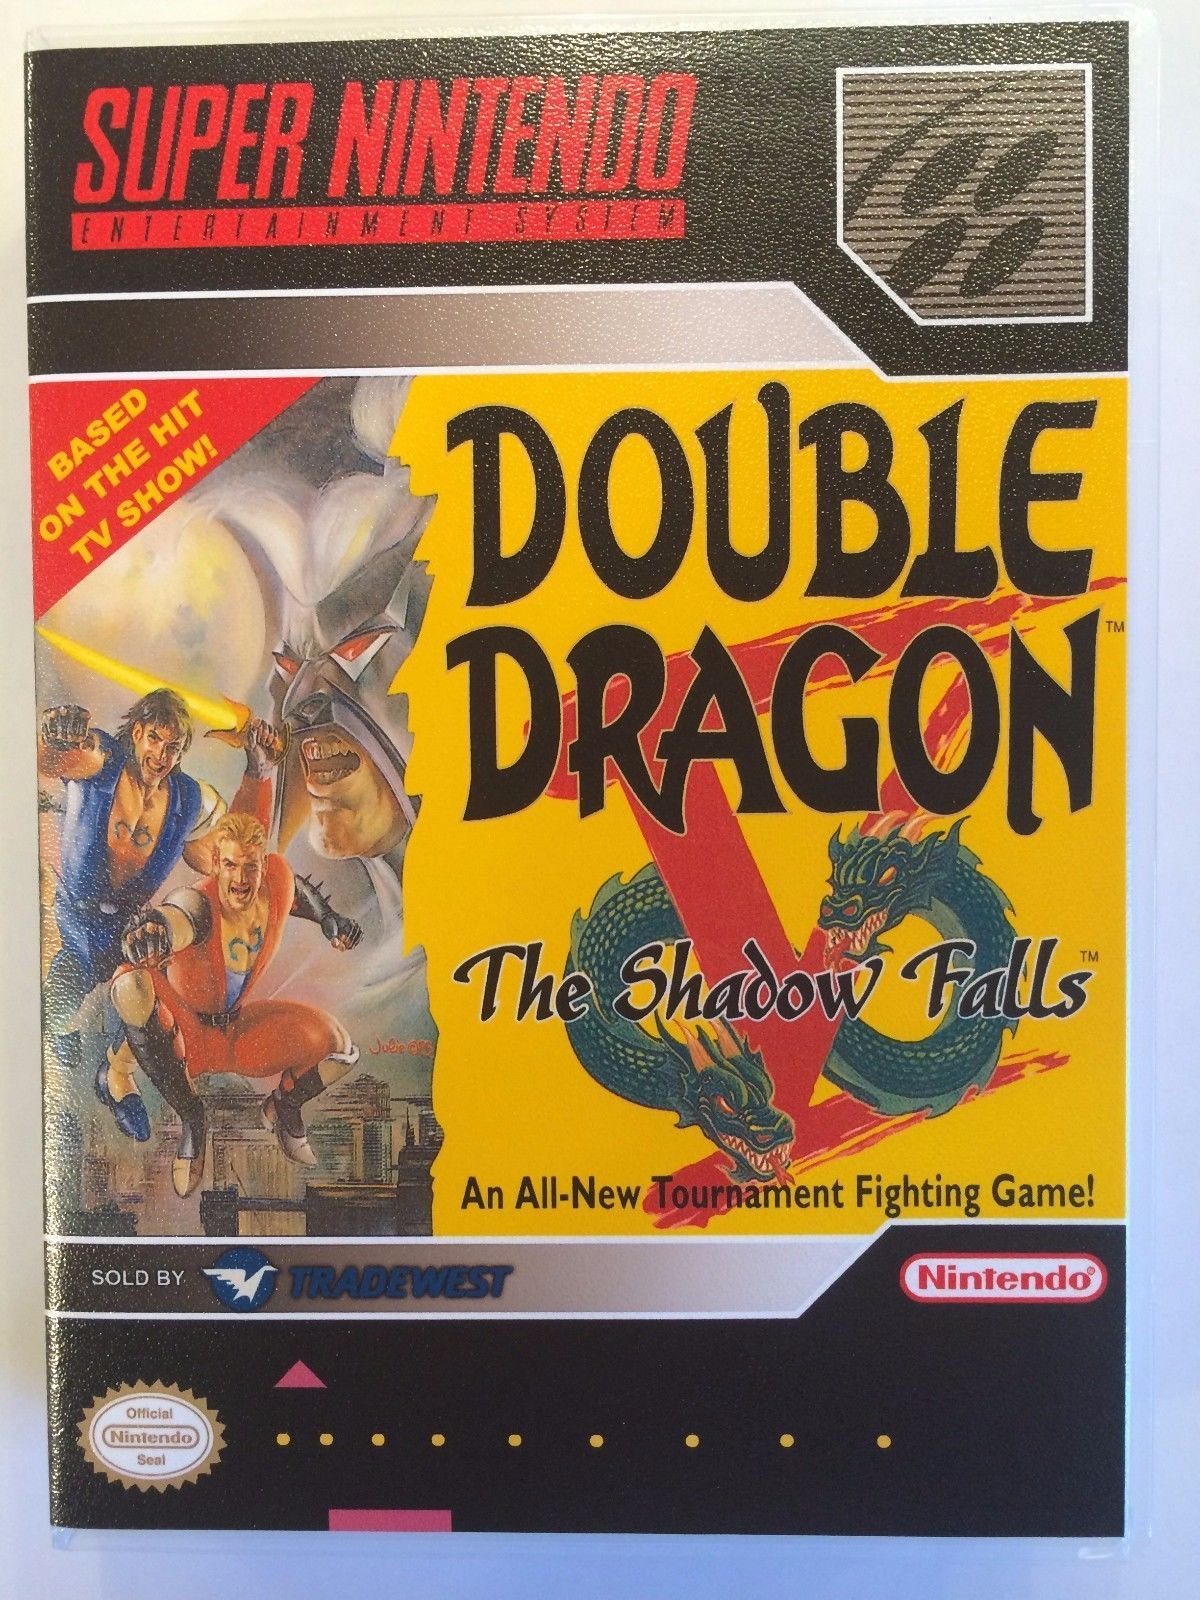 Double Dragon V The Shadow Falls - Super Nintendo - Replacement Case - No Game